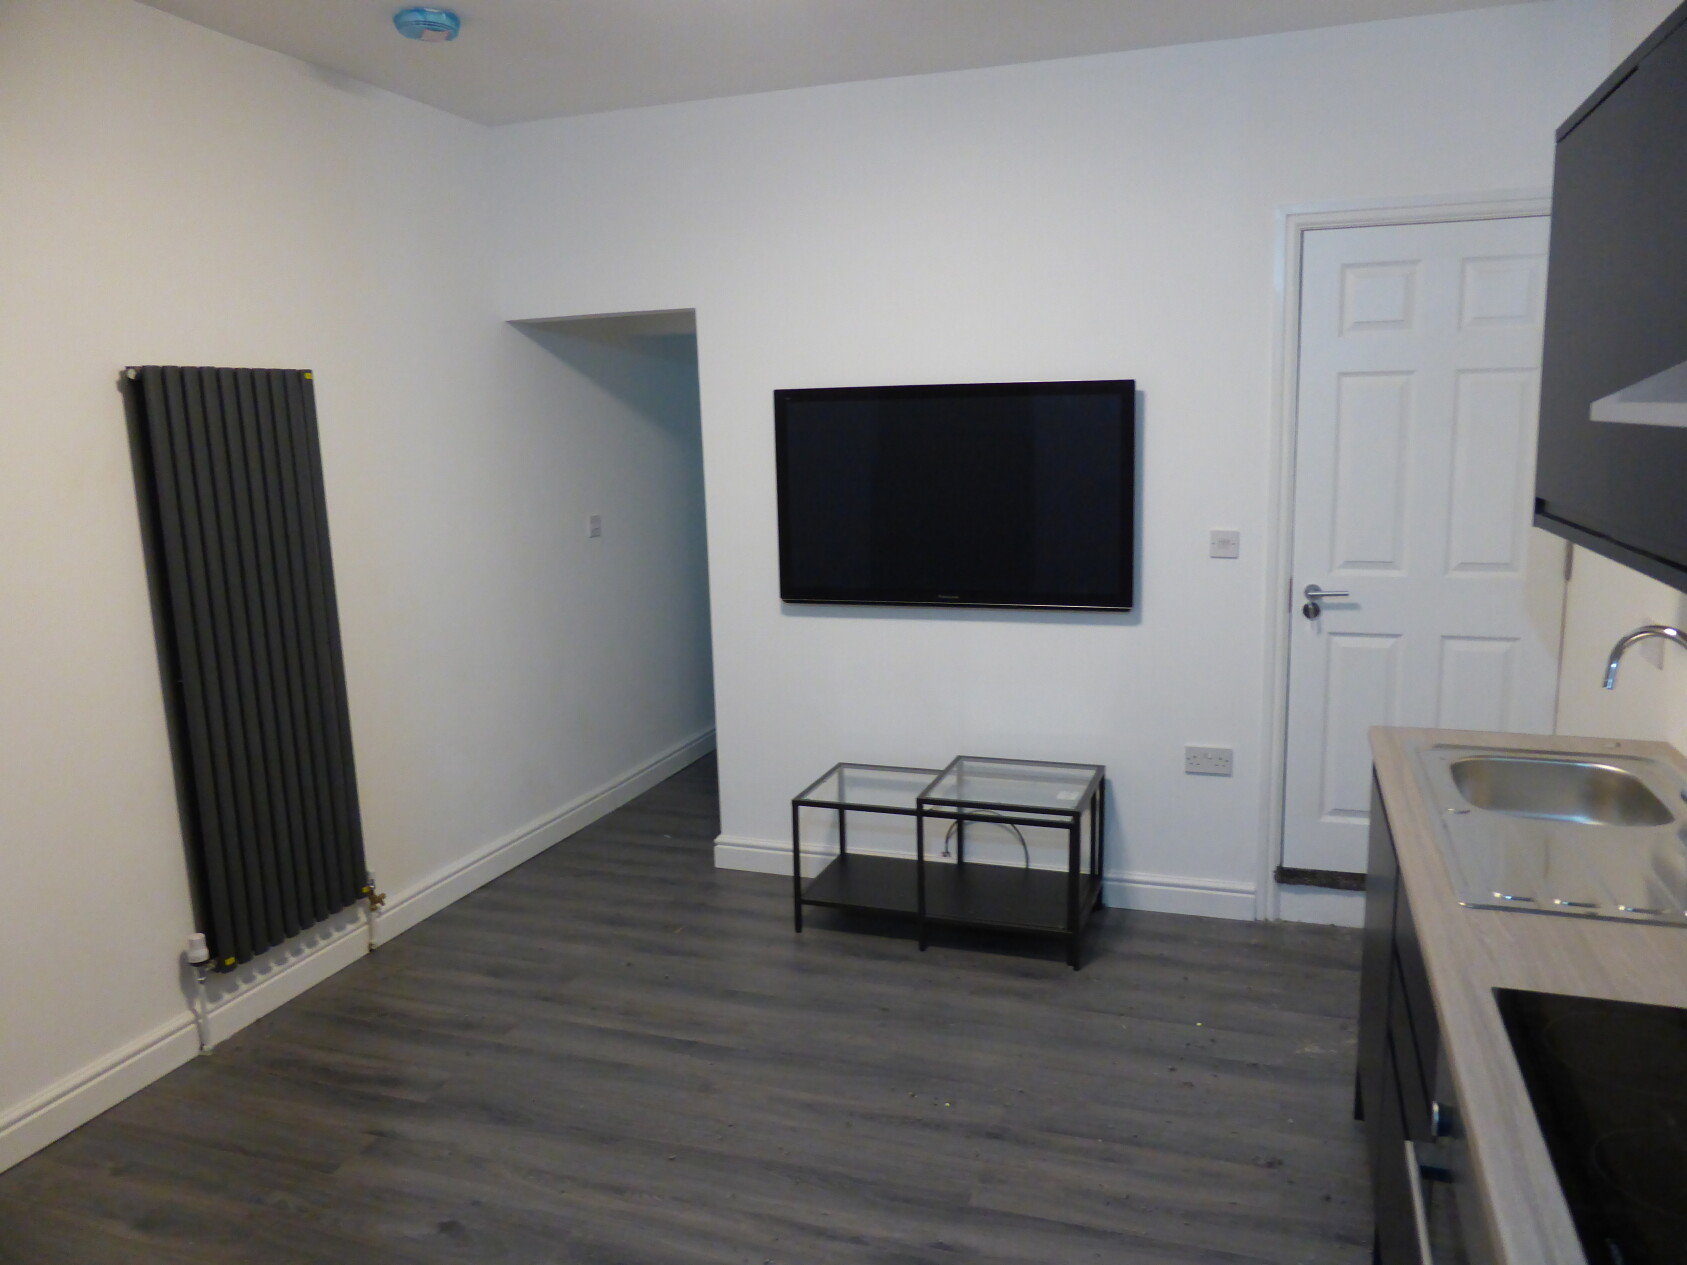 3 bedroom student house in Bishopsgate Green, Coventry